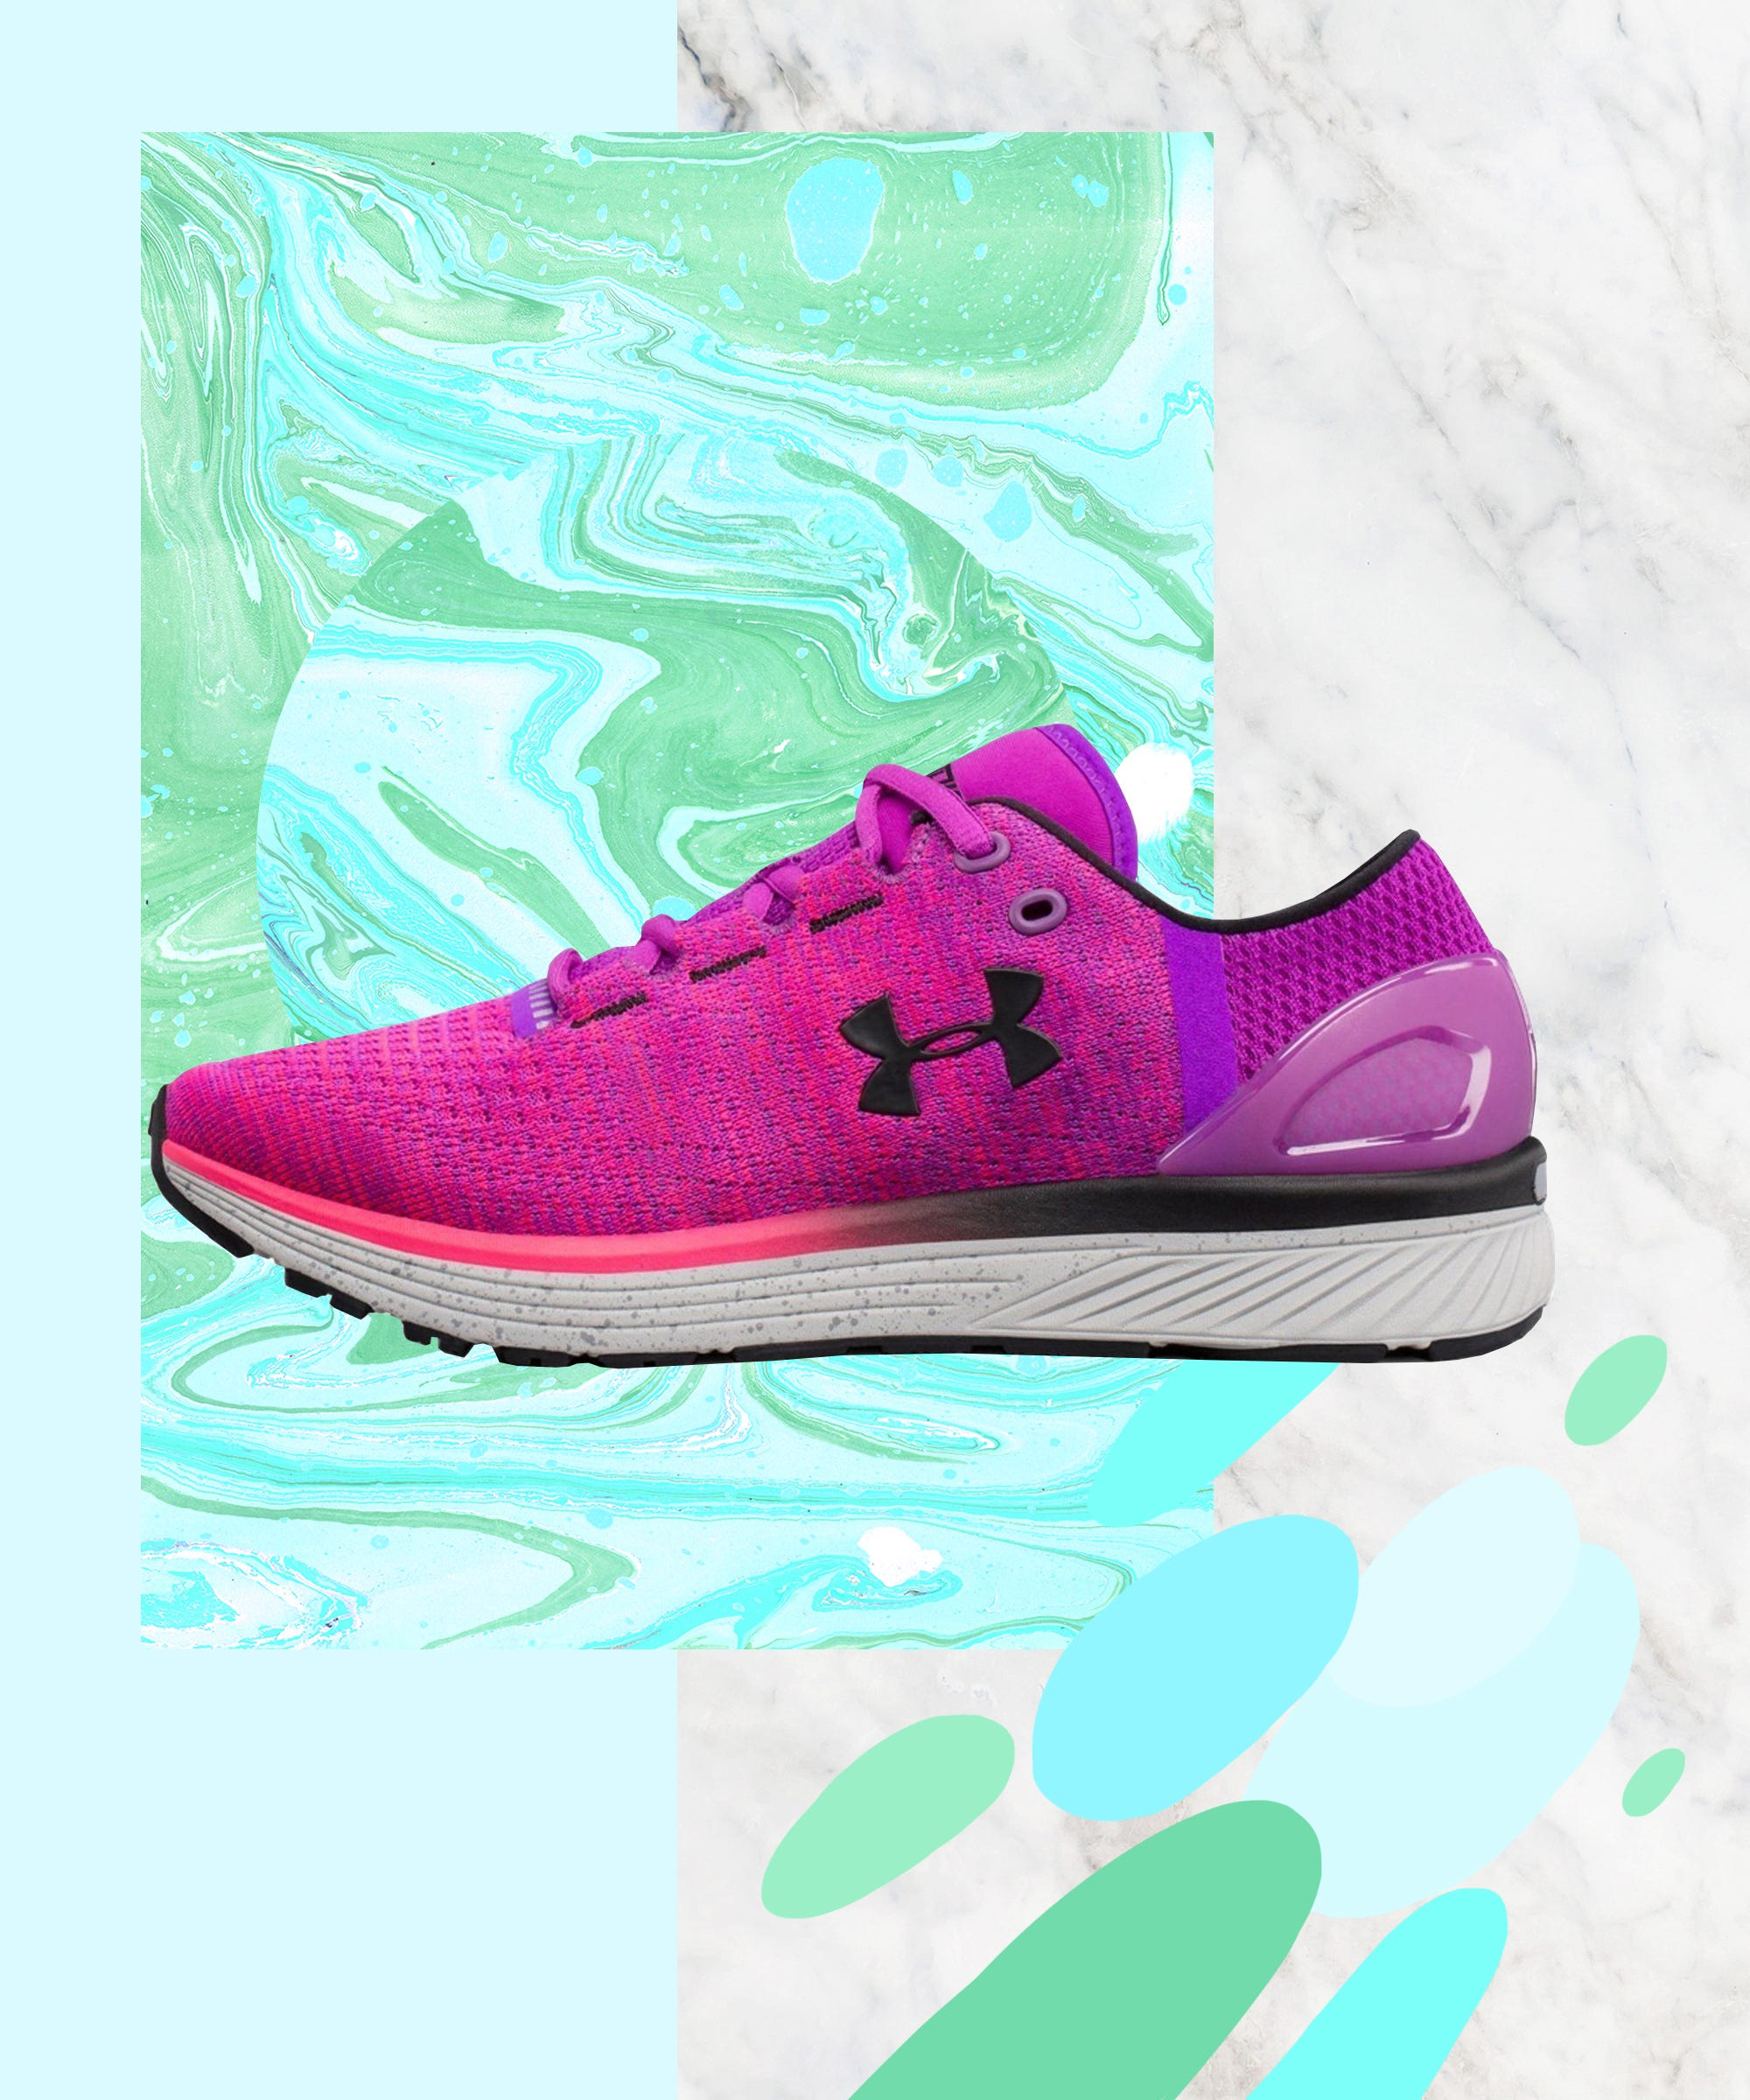 best affordable workout shoes